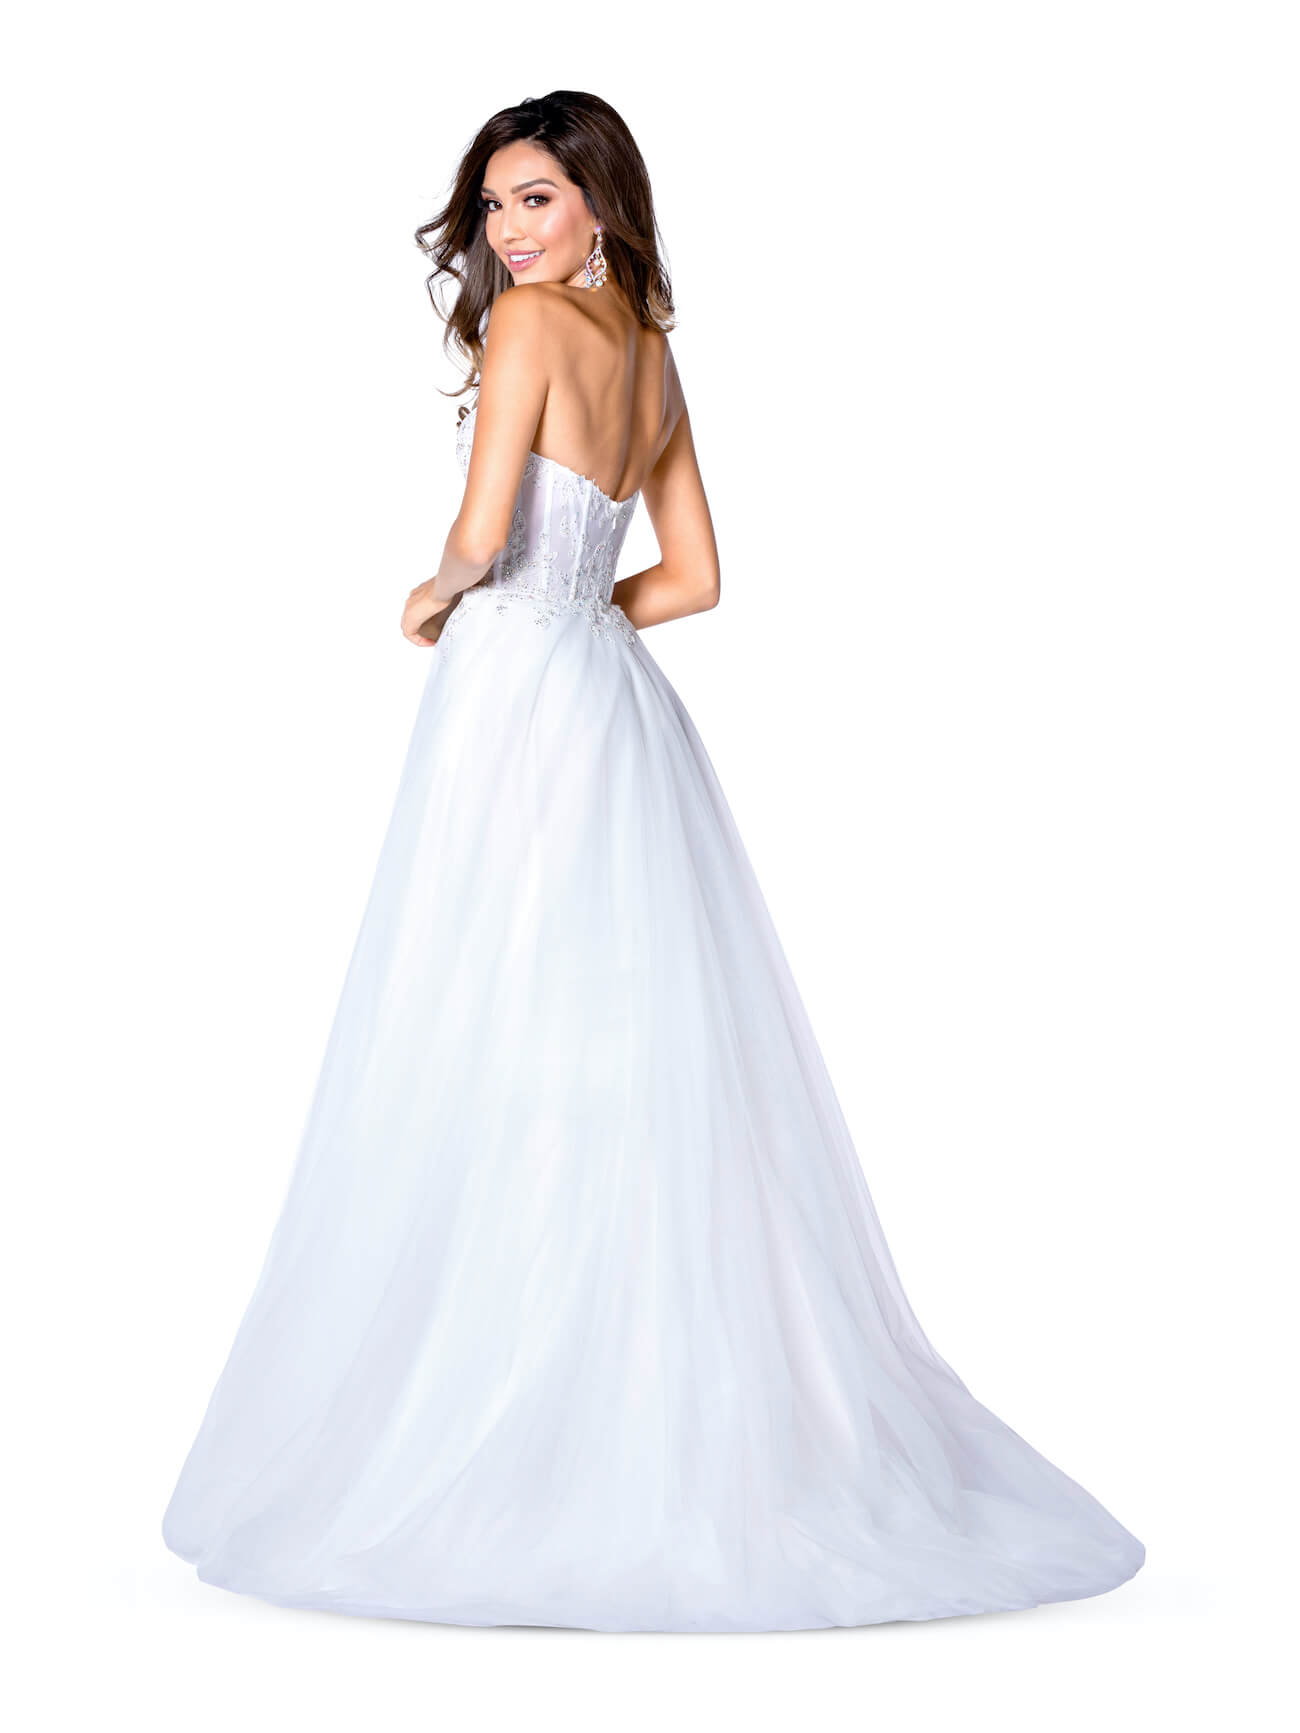 Vienna Nude Size 4 Prom A-line Dress on Queenly